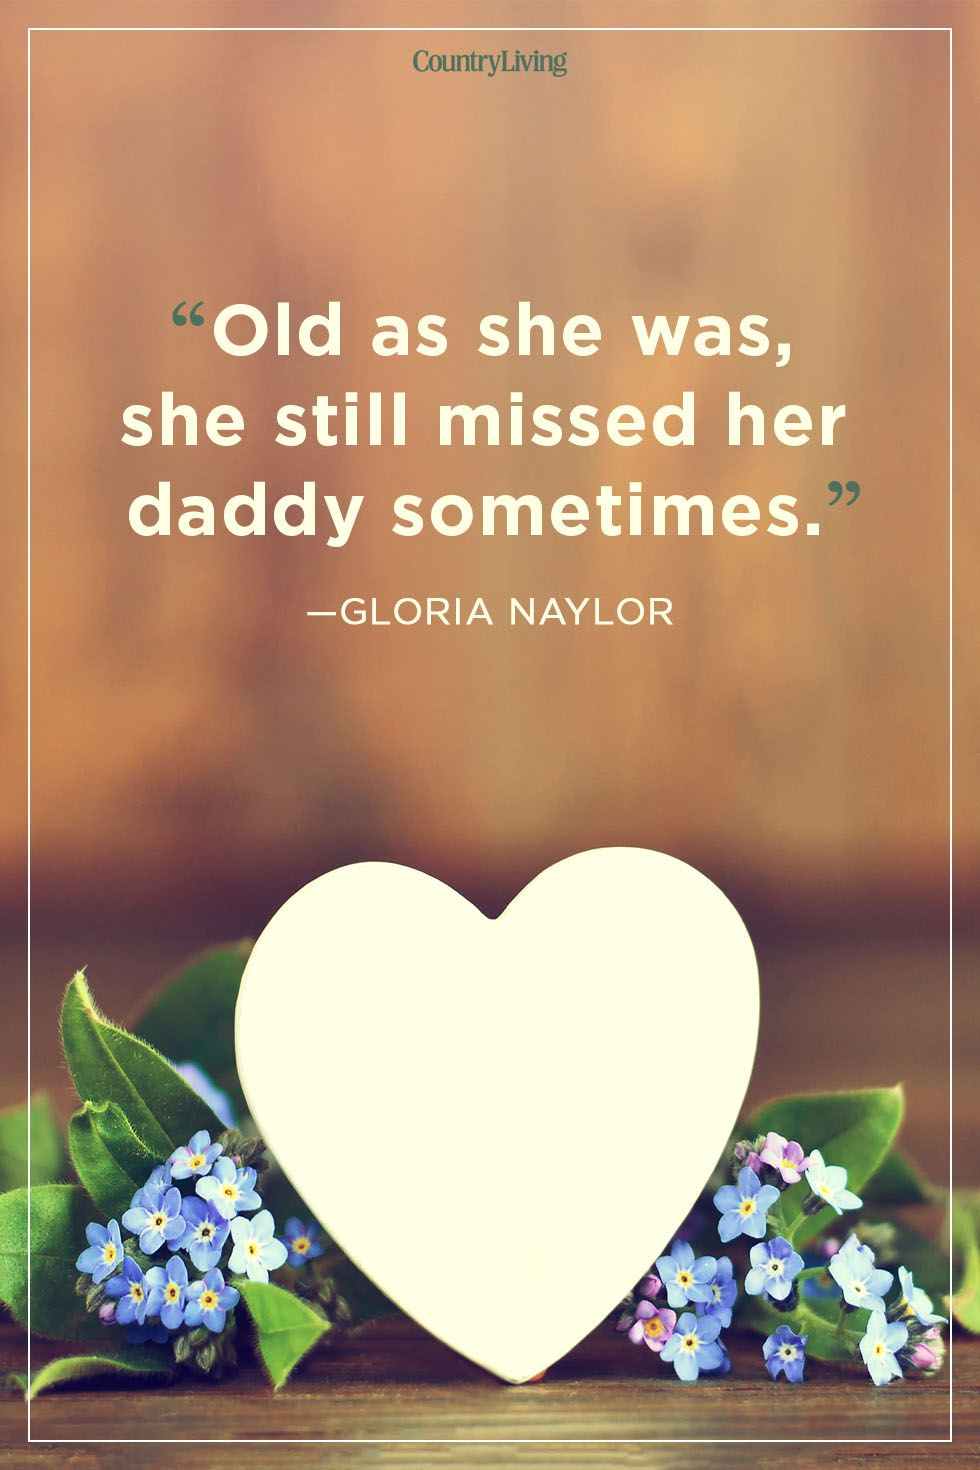 40 Best Father's Day Quotes - Good Quotes About Dads